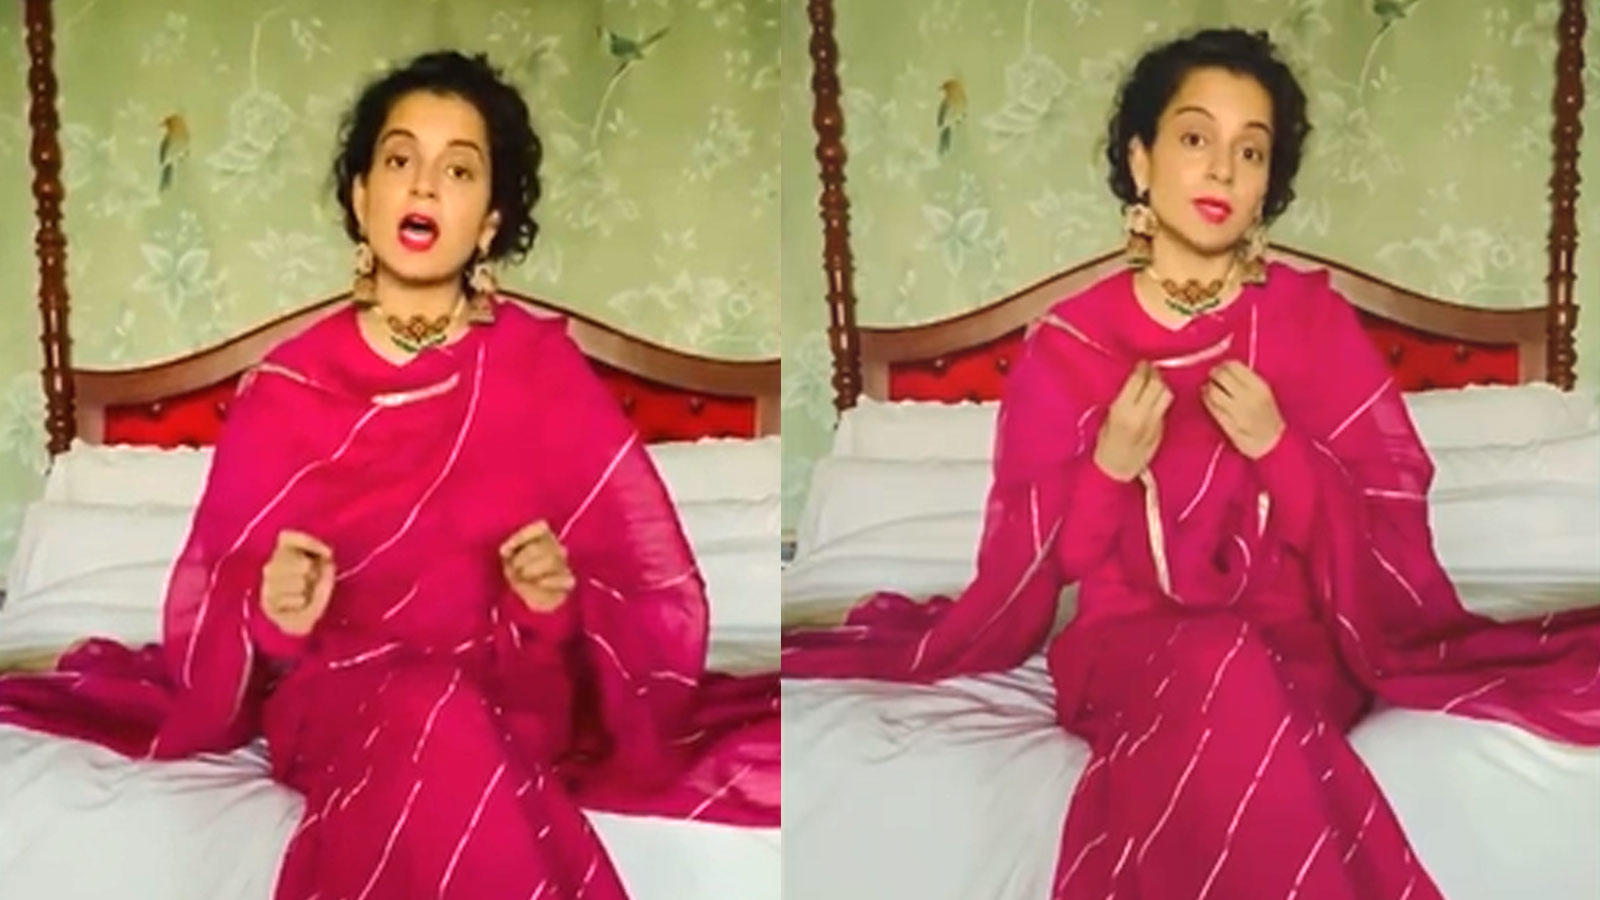 kangana-ranaut-reacts-on-current-israel-palestine-conflict-says-india-should-learn-from-israel